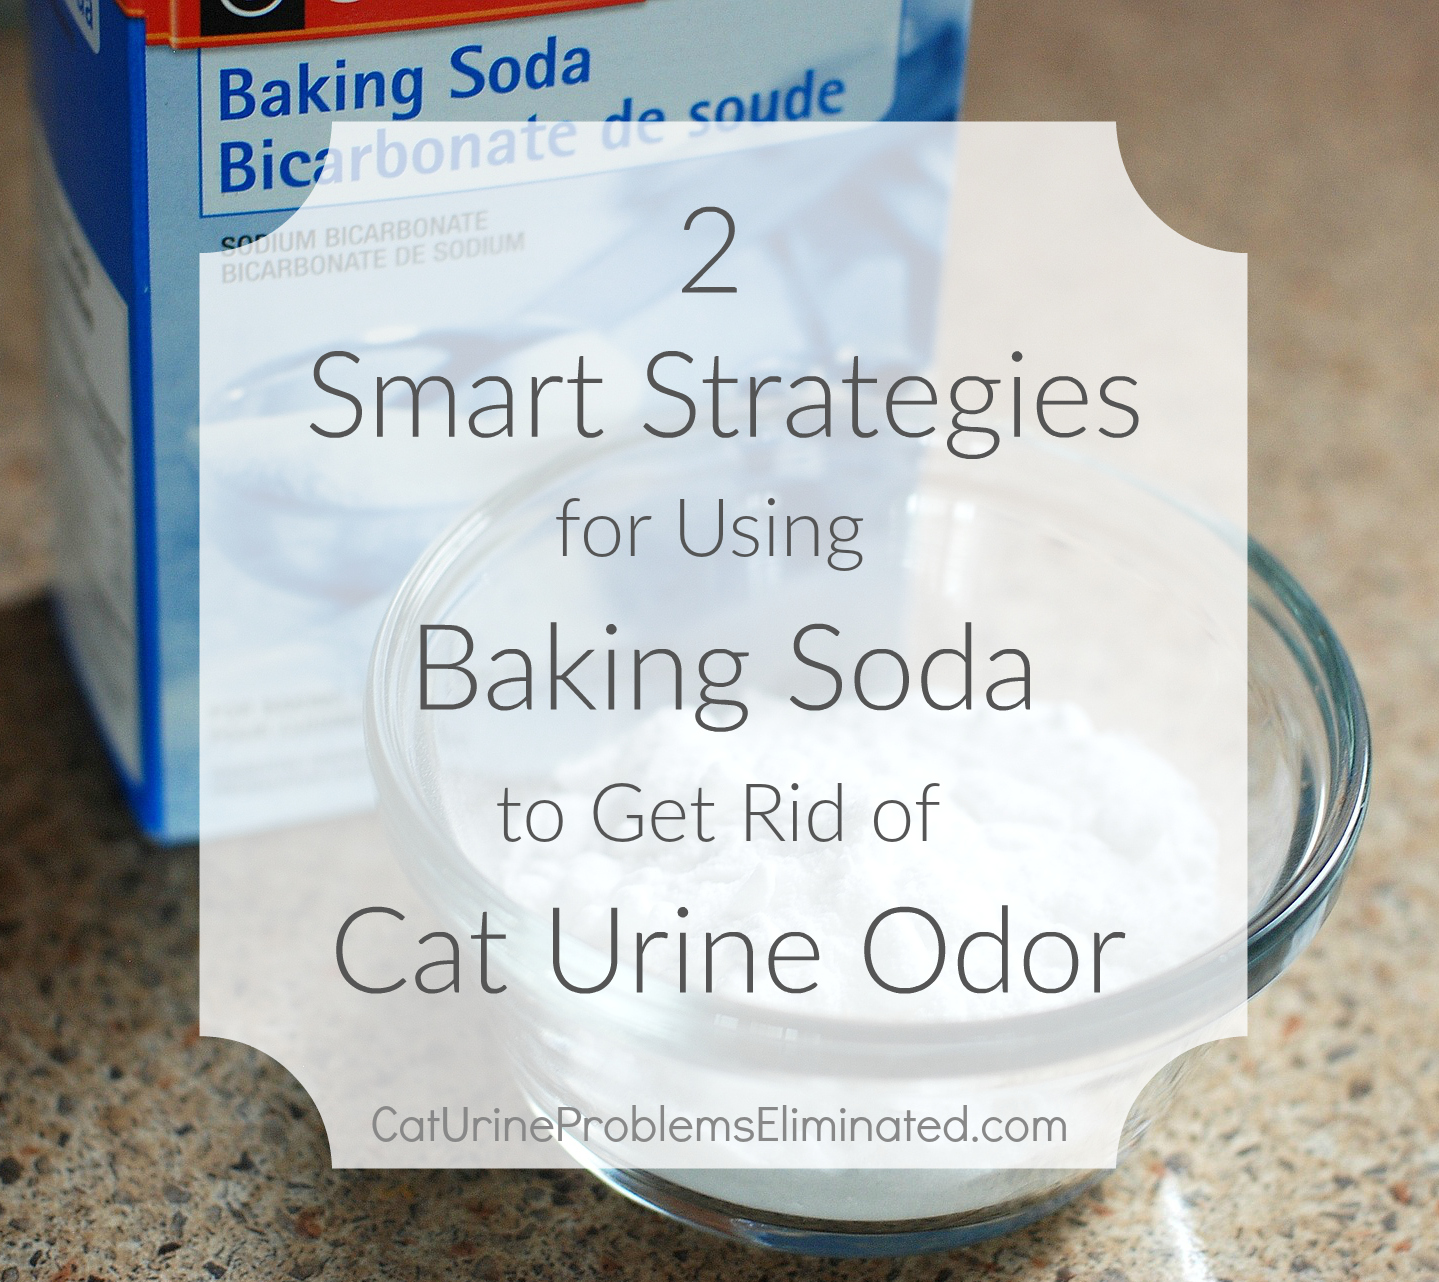 Baking Soda To Get Rid Of Smell Tips On Using Baking Soda For Cat Urine Odor Removal  Cat Urine